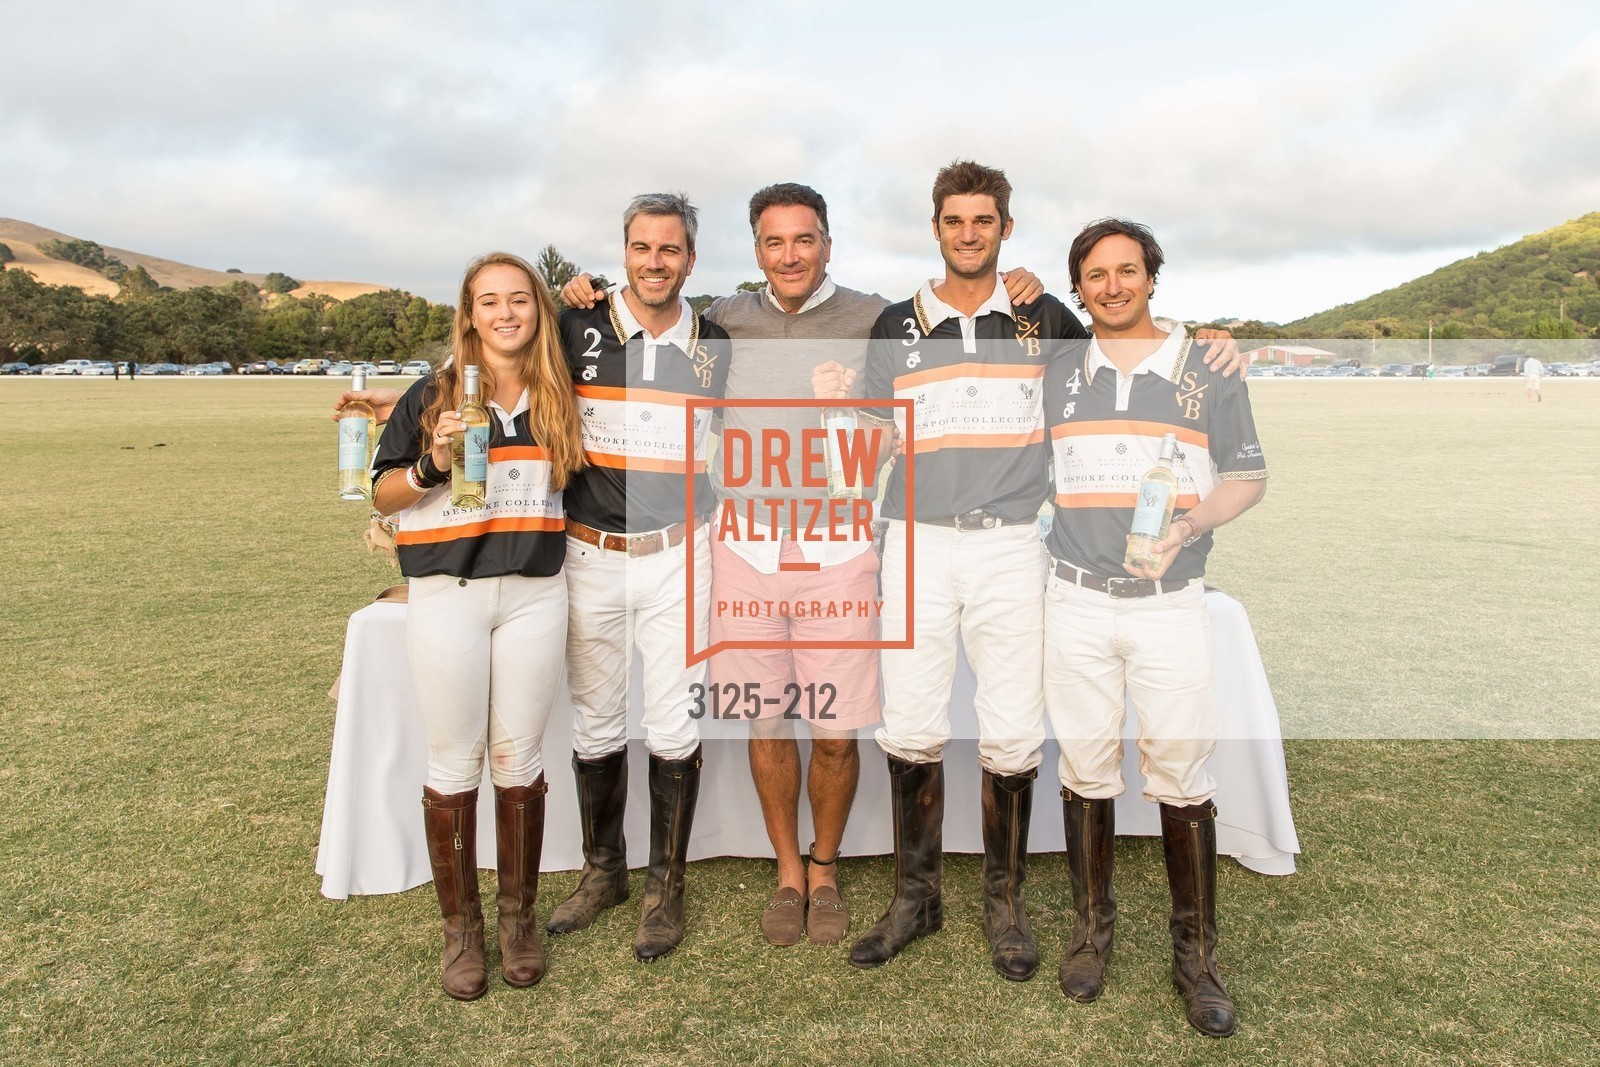 Fiona Bach, Jonathan Haswell, Michael Polenske, Ignacio Deltour, John Bickford, Stick & Ball Oyster Cup Polo Tournament, Cerro Pampa Polo Club, July 25th, 2015,Drew Altizer, Drew Altizer Photography, full-service agency, private events, San Francisco photographer, photographer california